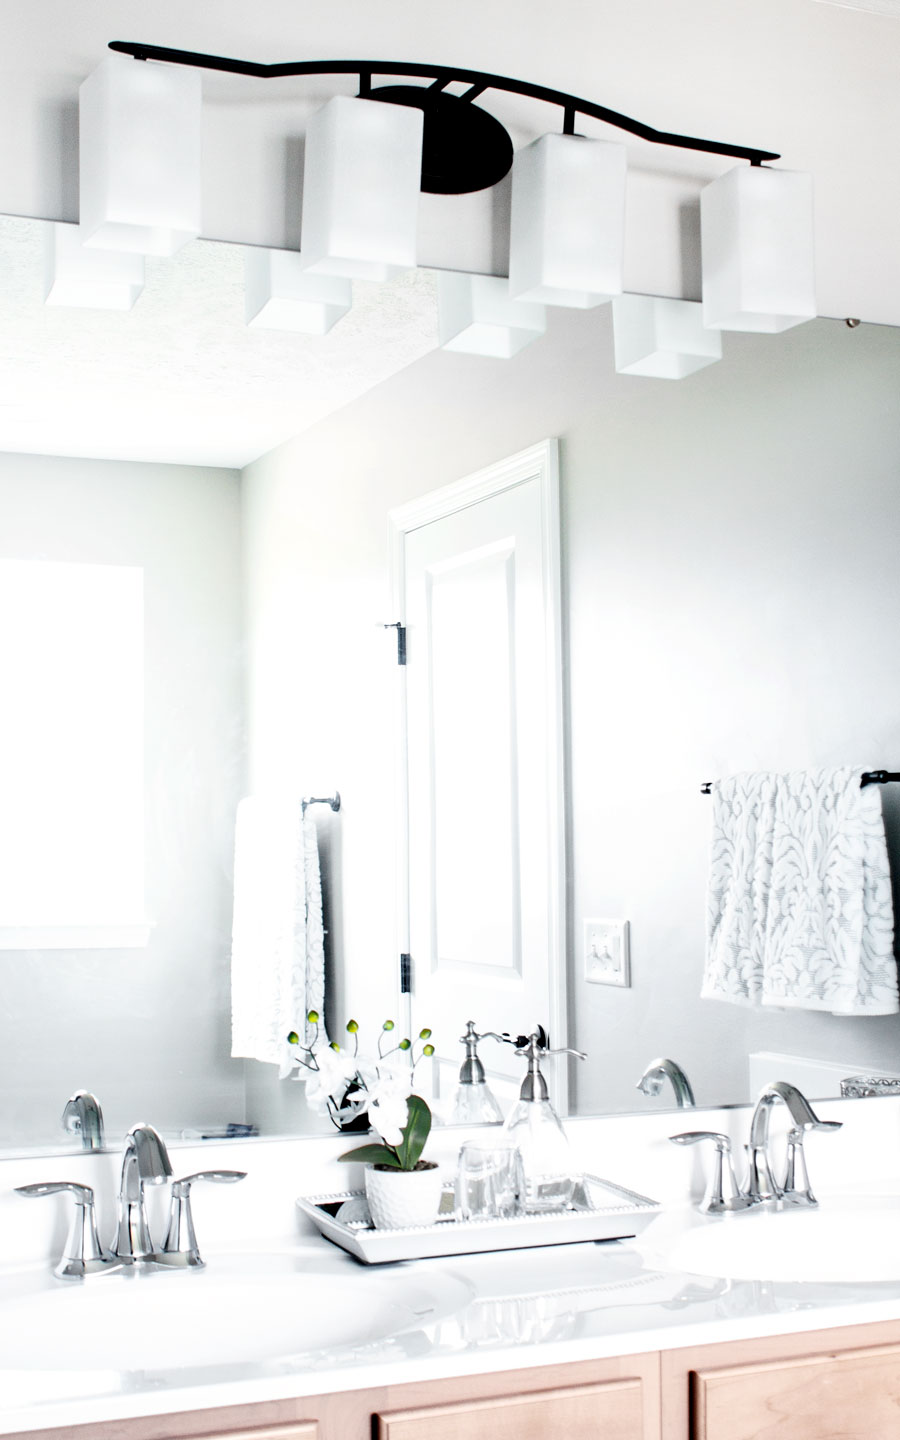 Inexpensive lighting & mirror options to make over a bathroom on less than $100. #$100 challenge